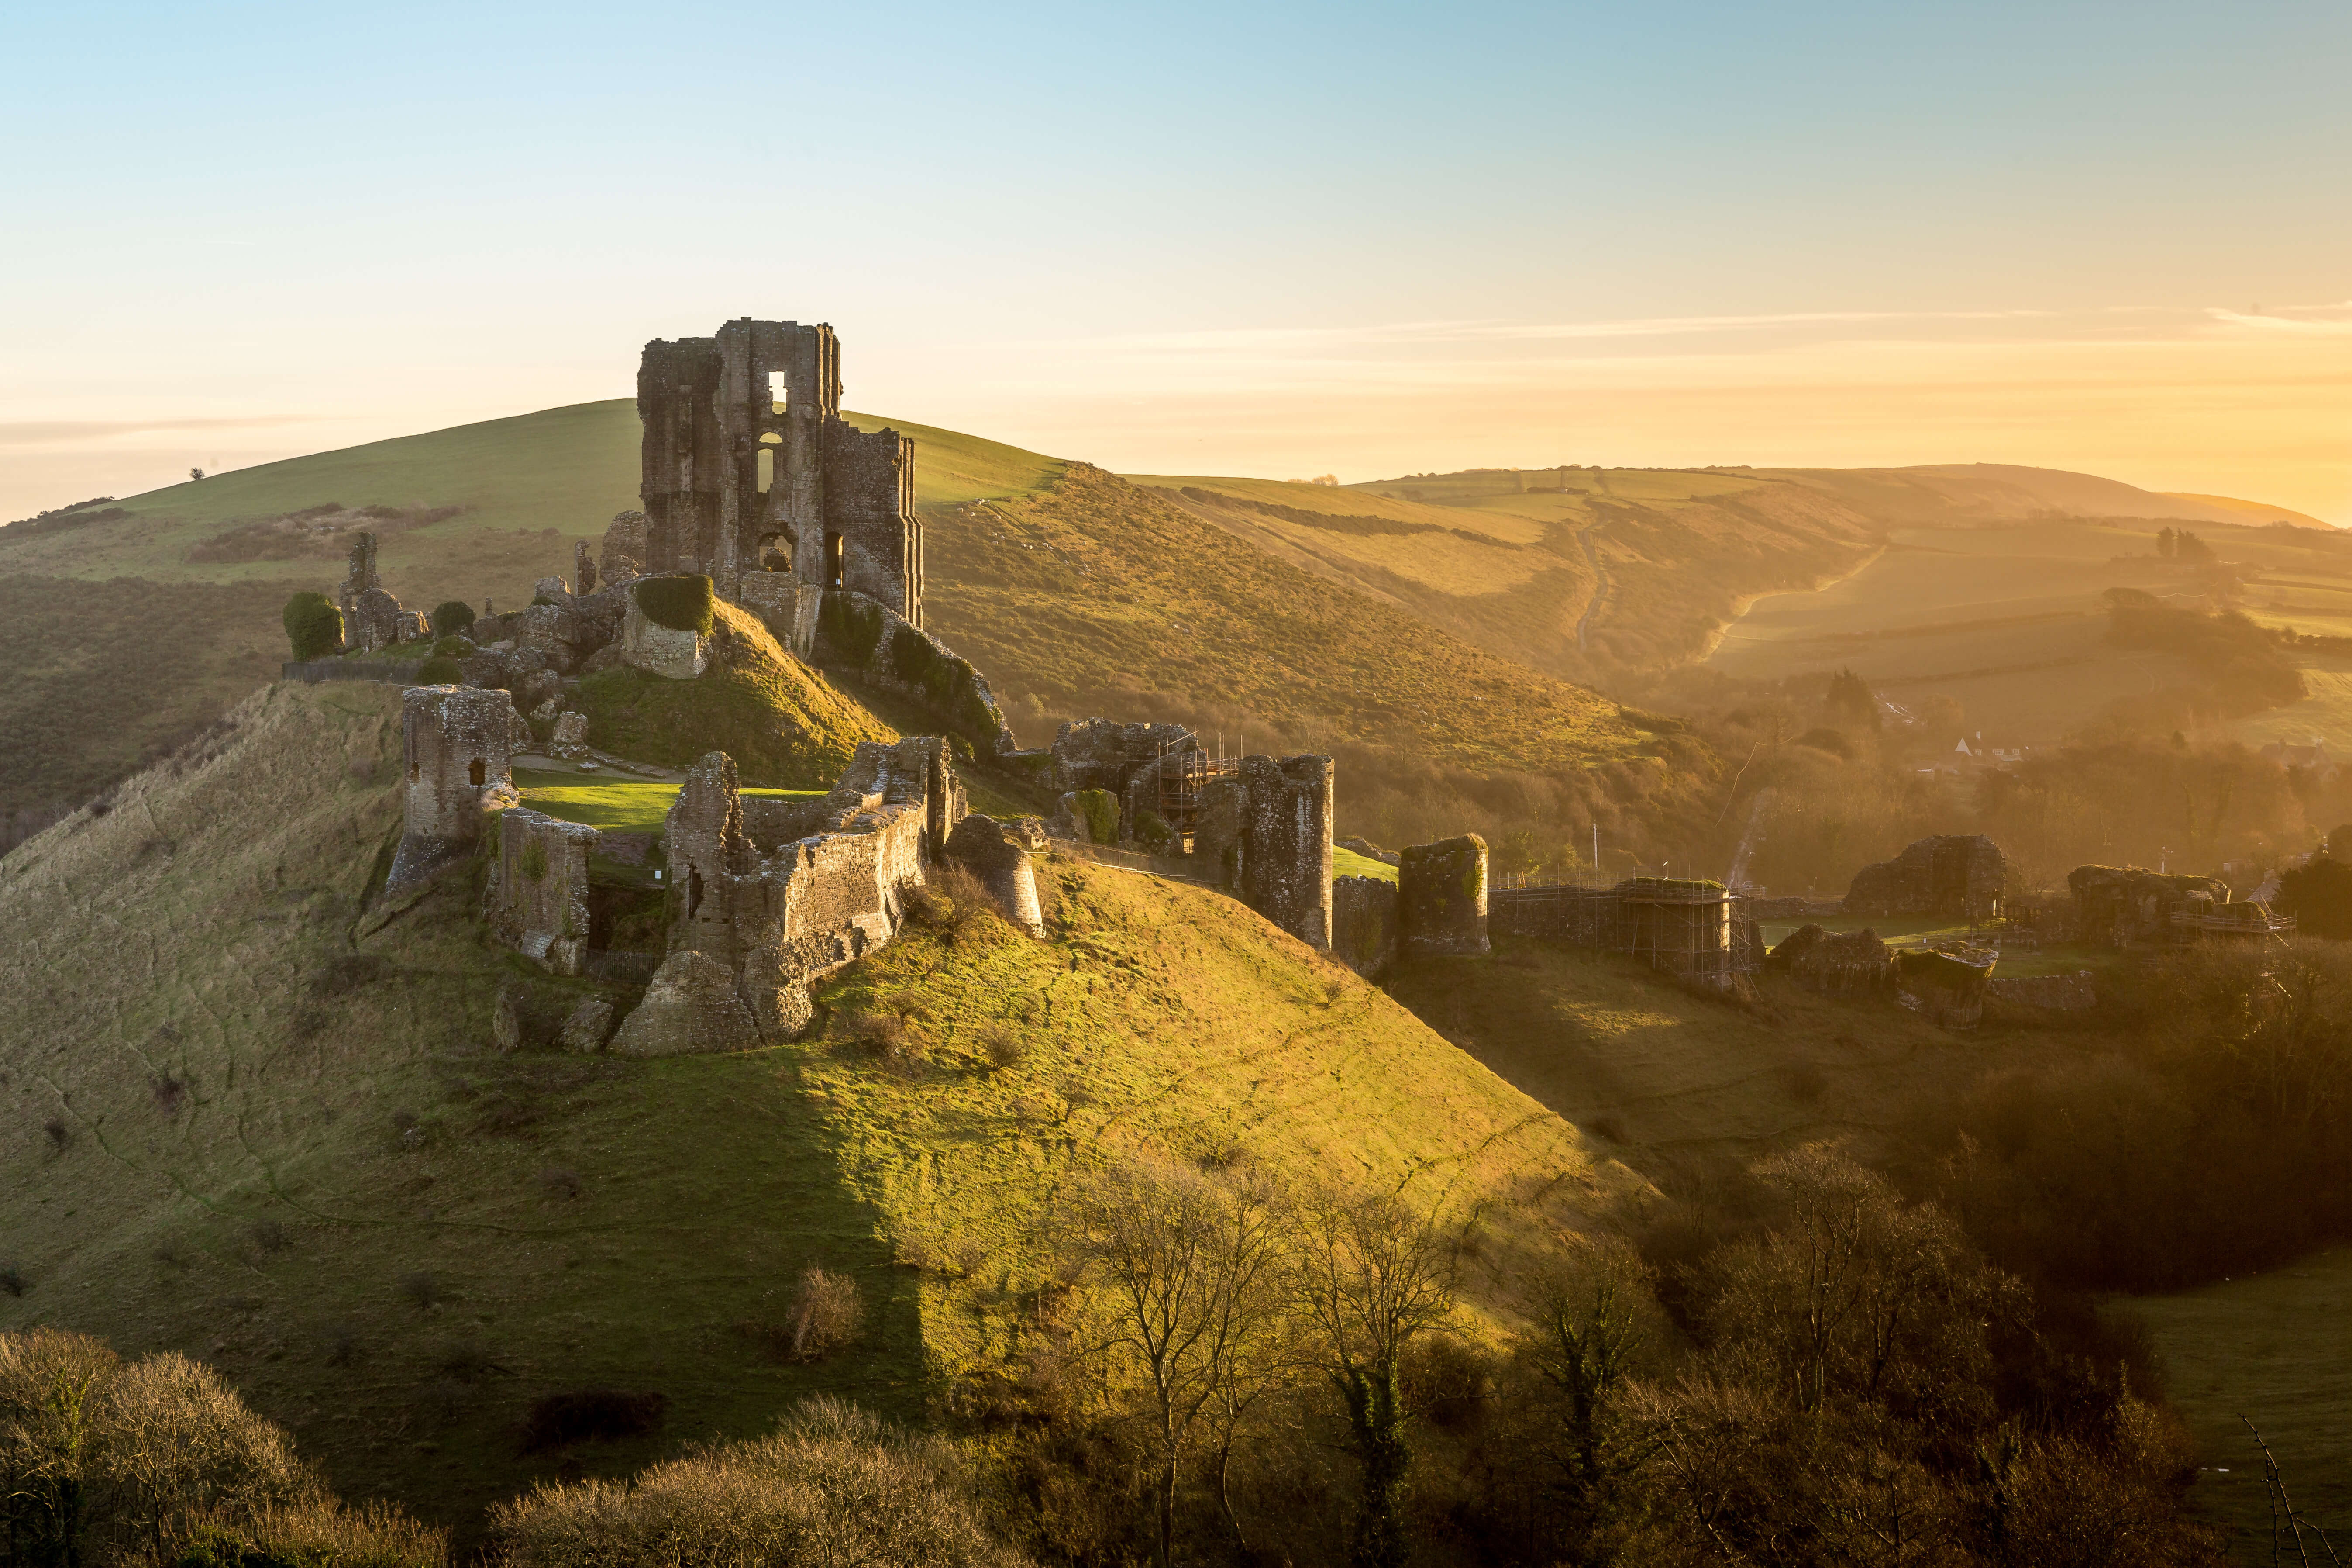 The ruins of Corfe Castle, and its surrounding town, located in Dorset.